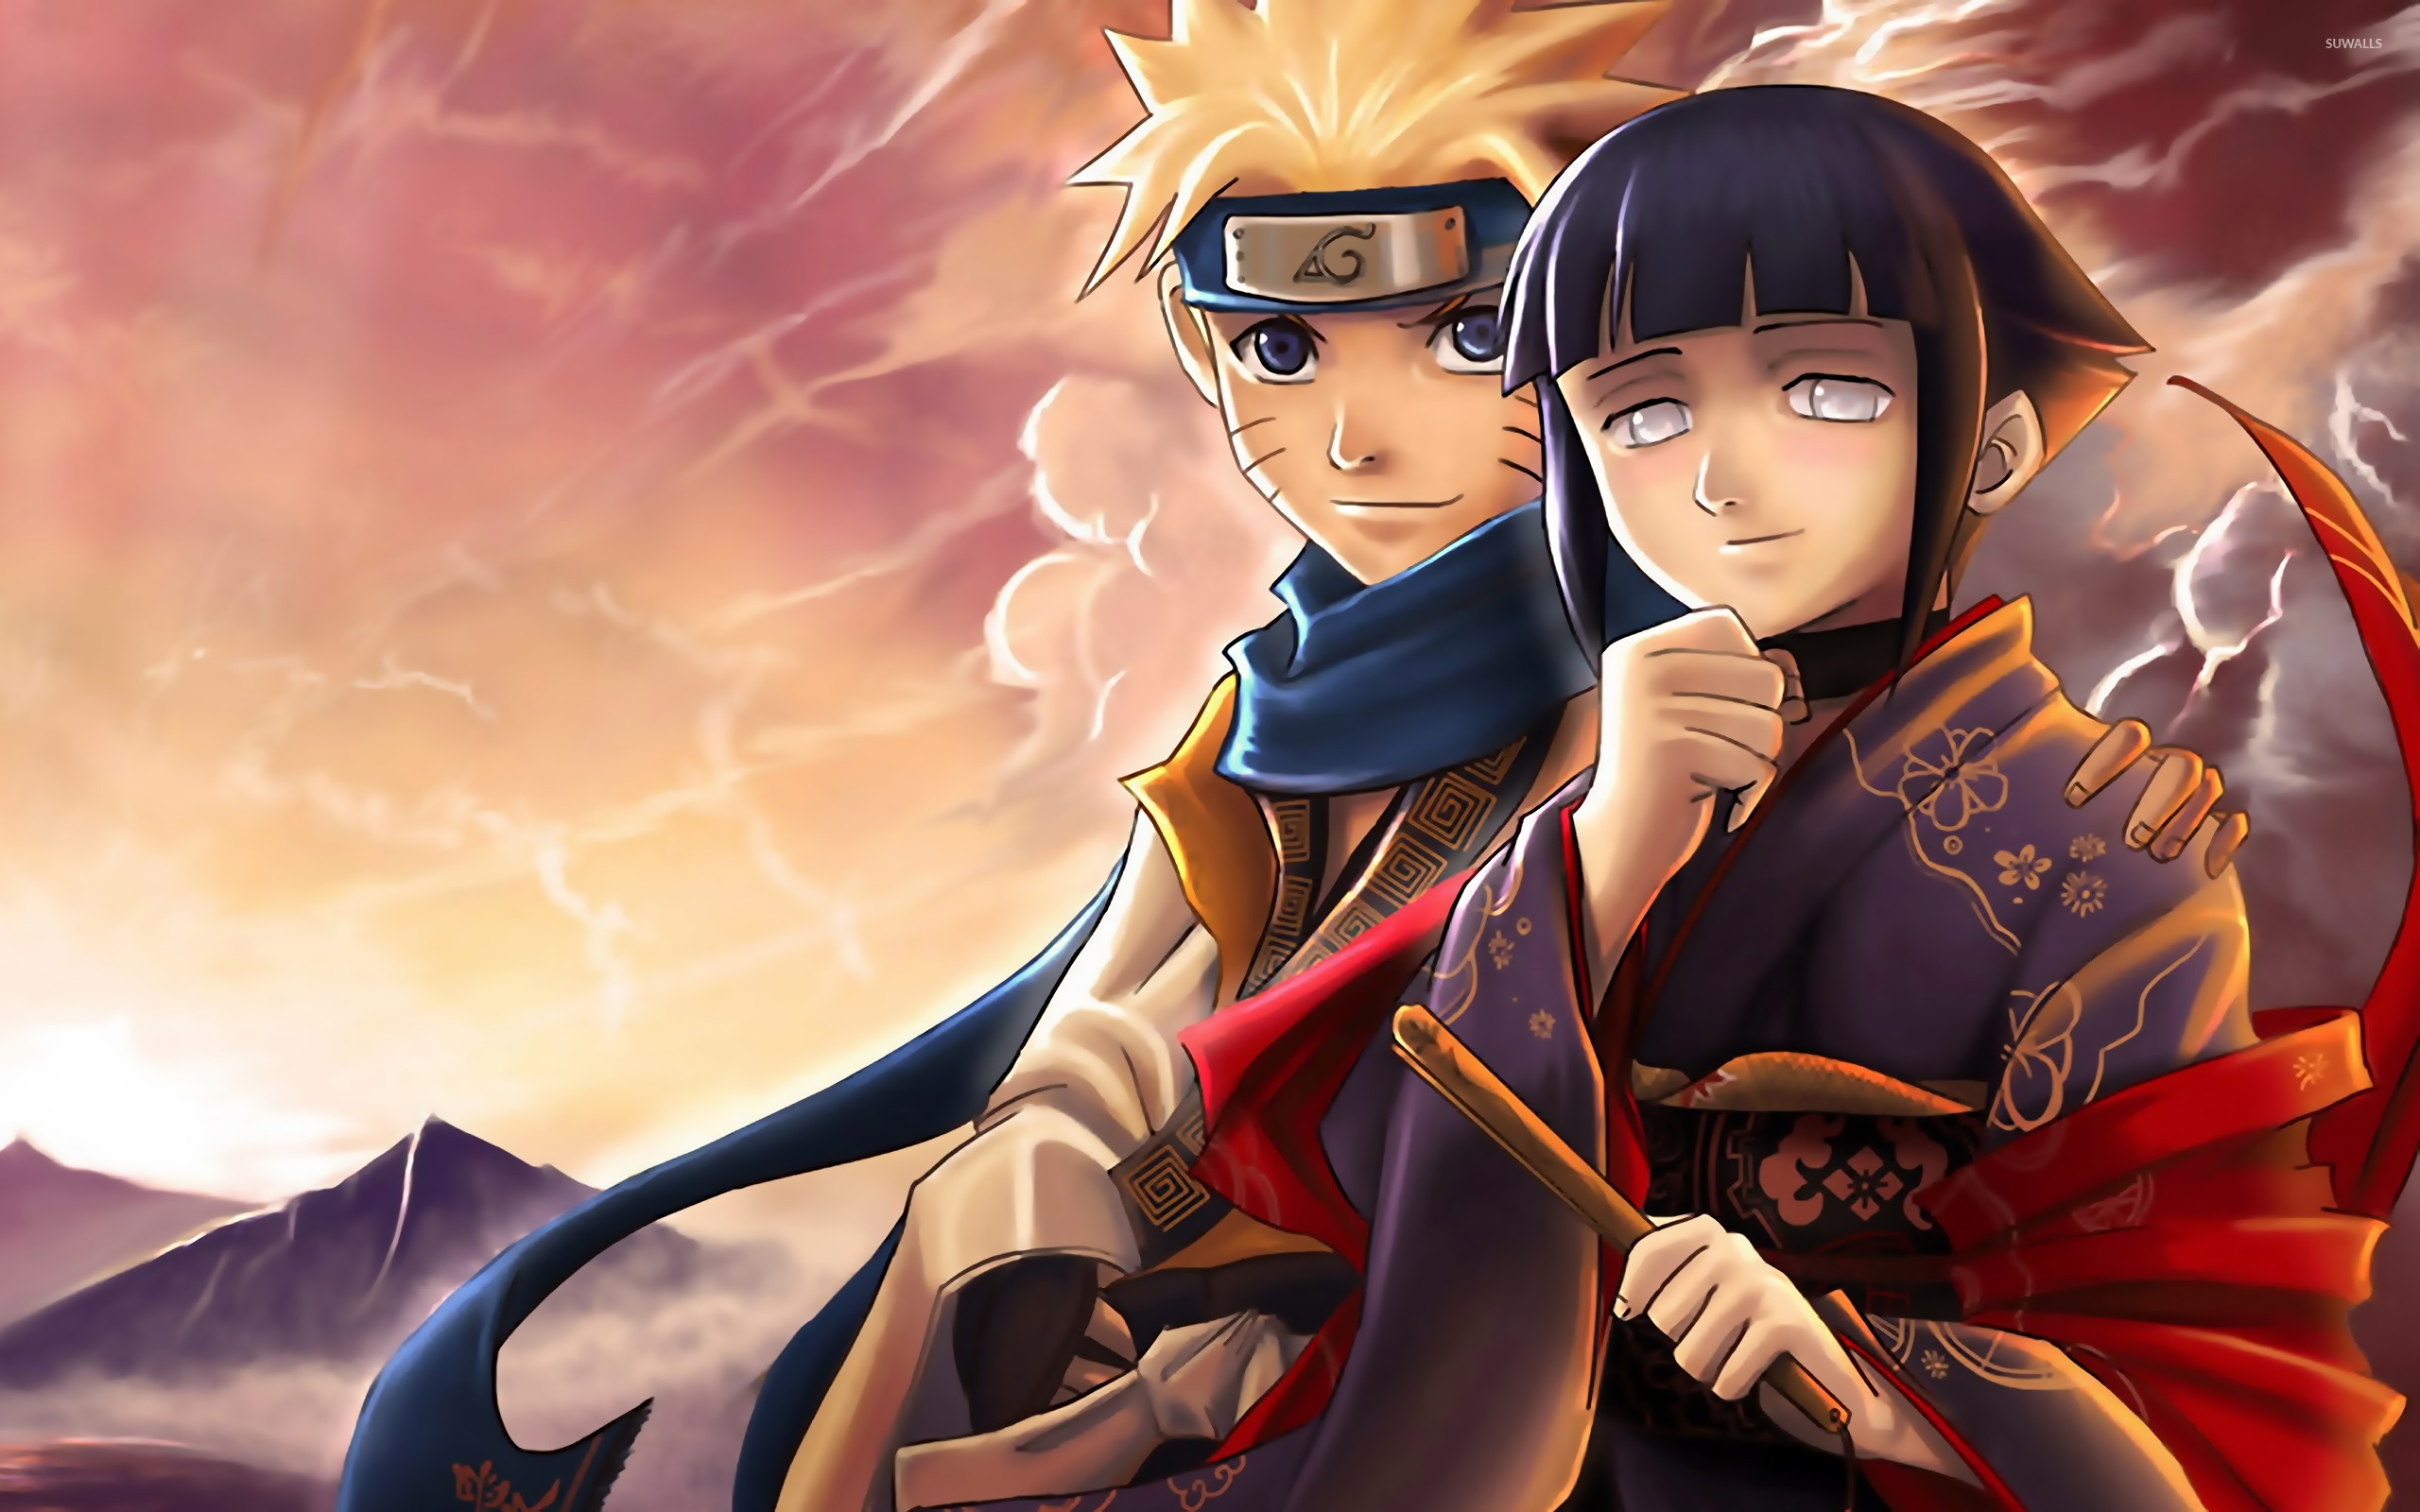 141 1416703 4k ultra hd naruto wallpaper 4k